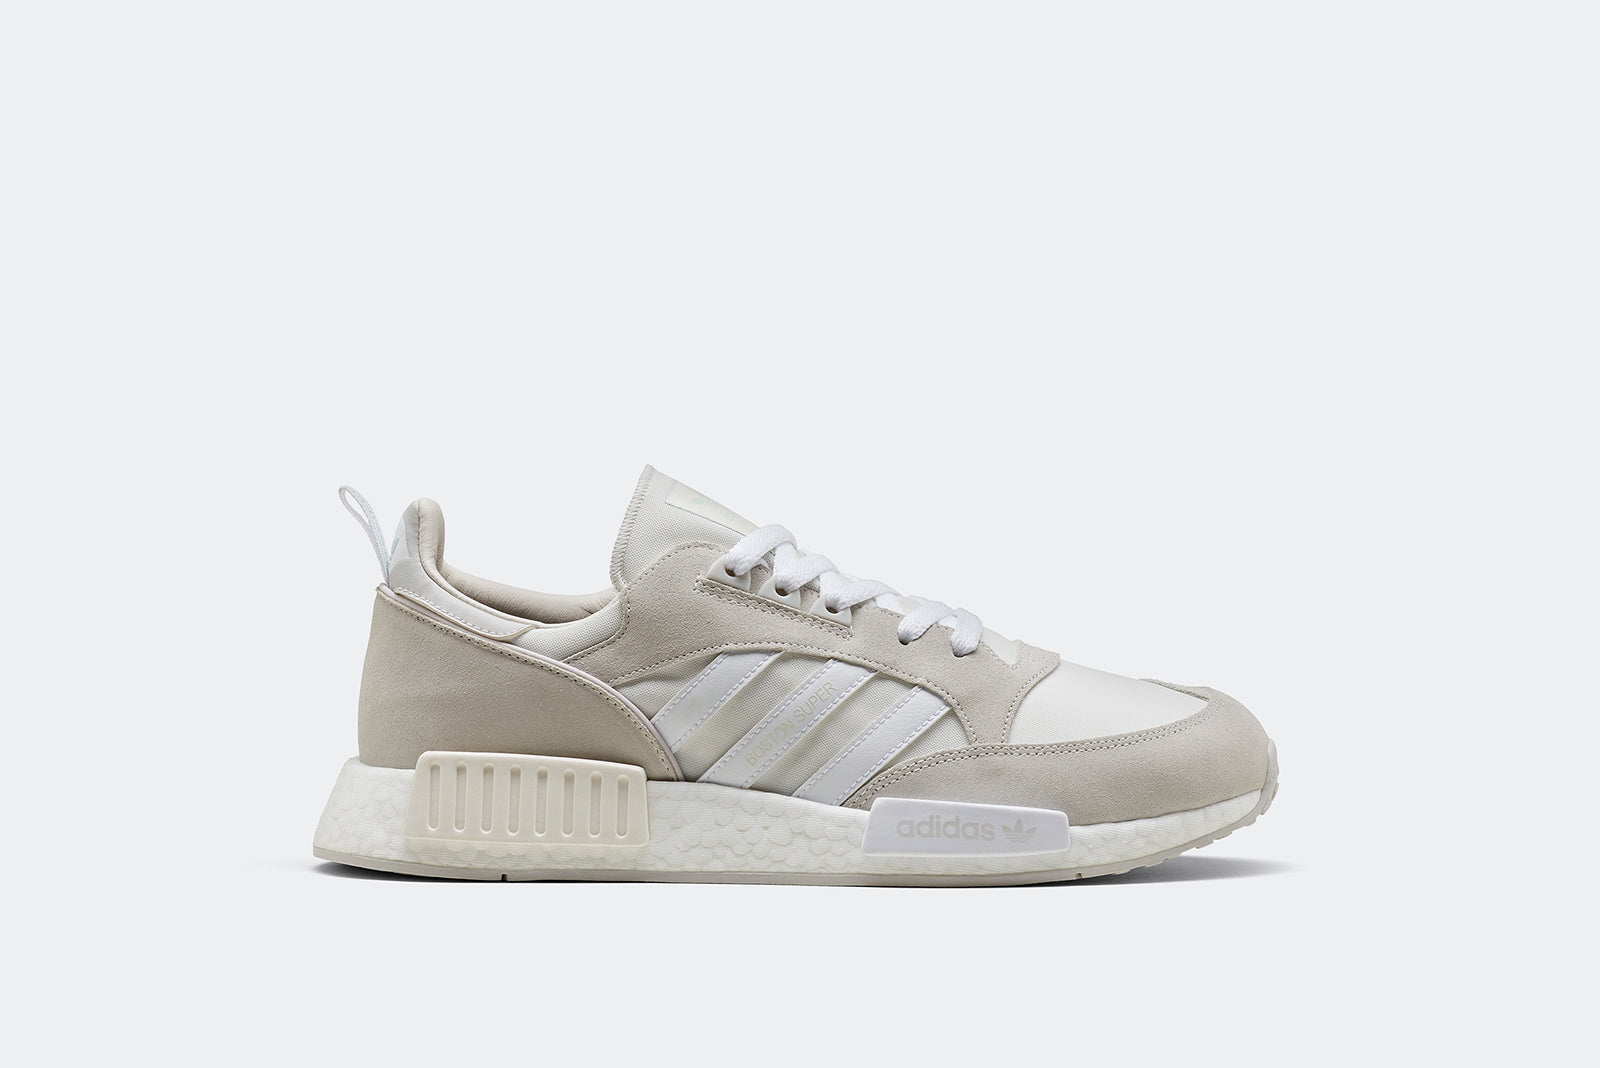 154bb90fc7e adidas Originals Boston Super x R1  Never made  G27834 CLOWHI FTWWHT GREONE  Price  £109.00. Launch  Sunday 18th of November ONLINE  23 00GMT